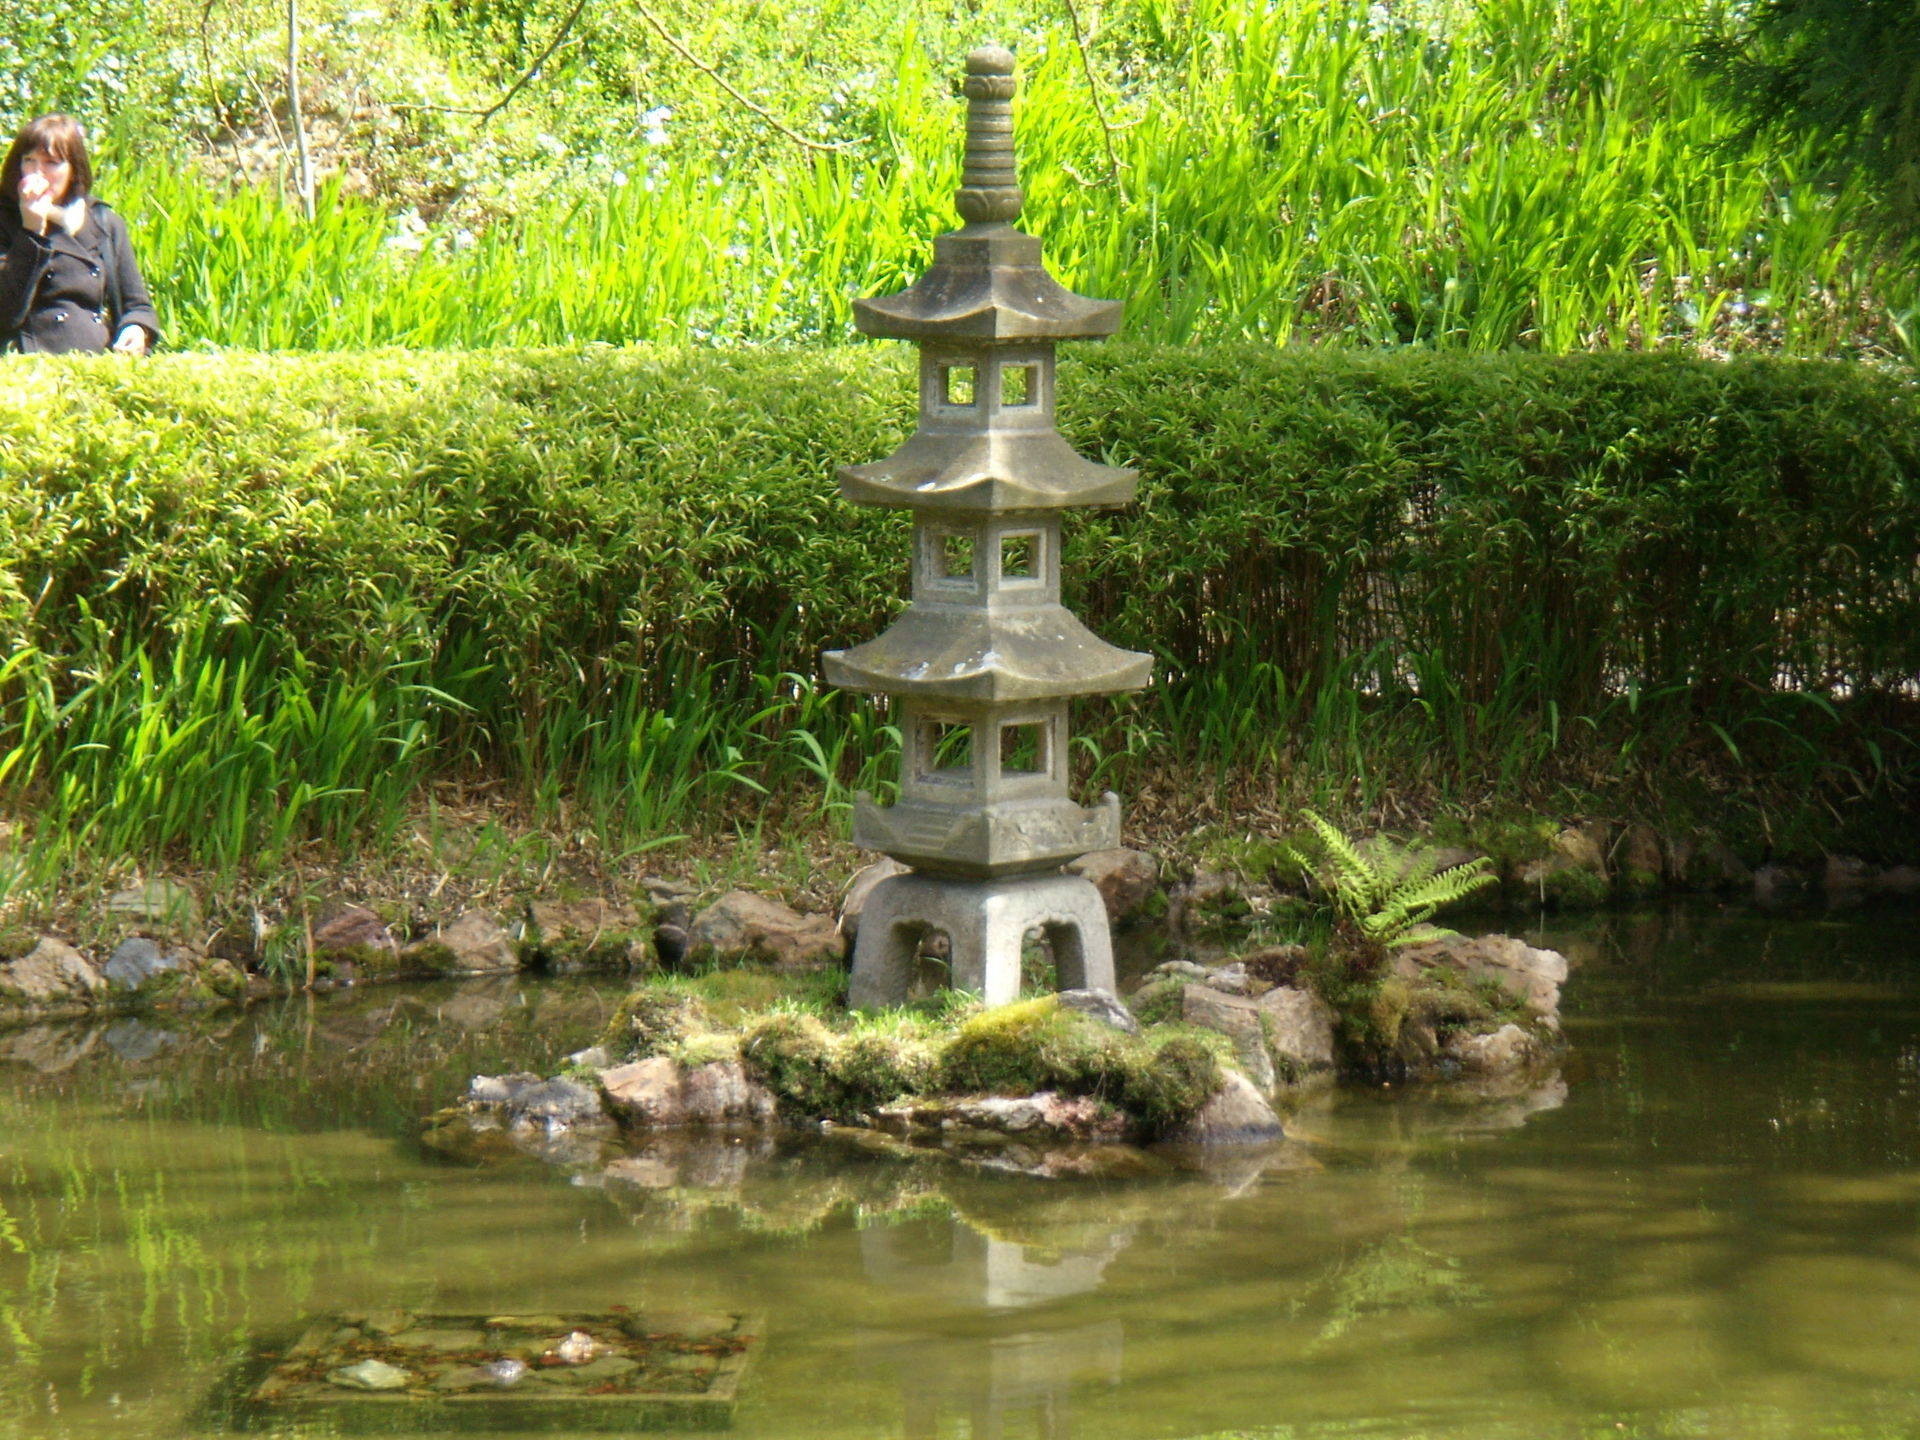 San Francisco Images Japanese Tea Garden Hd Wallpaper And Background Photos 962257